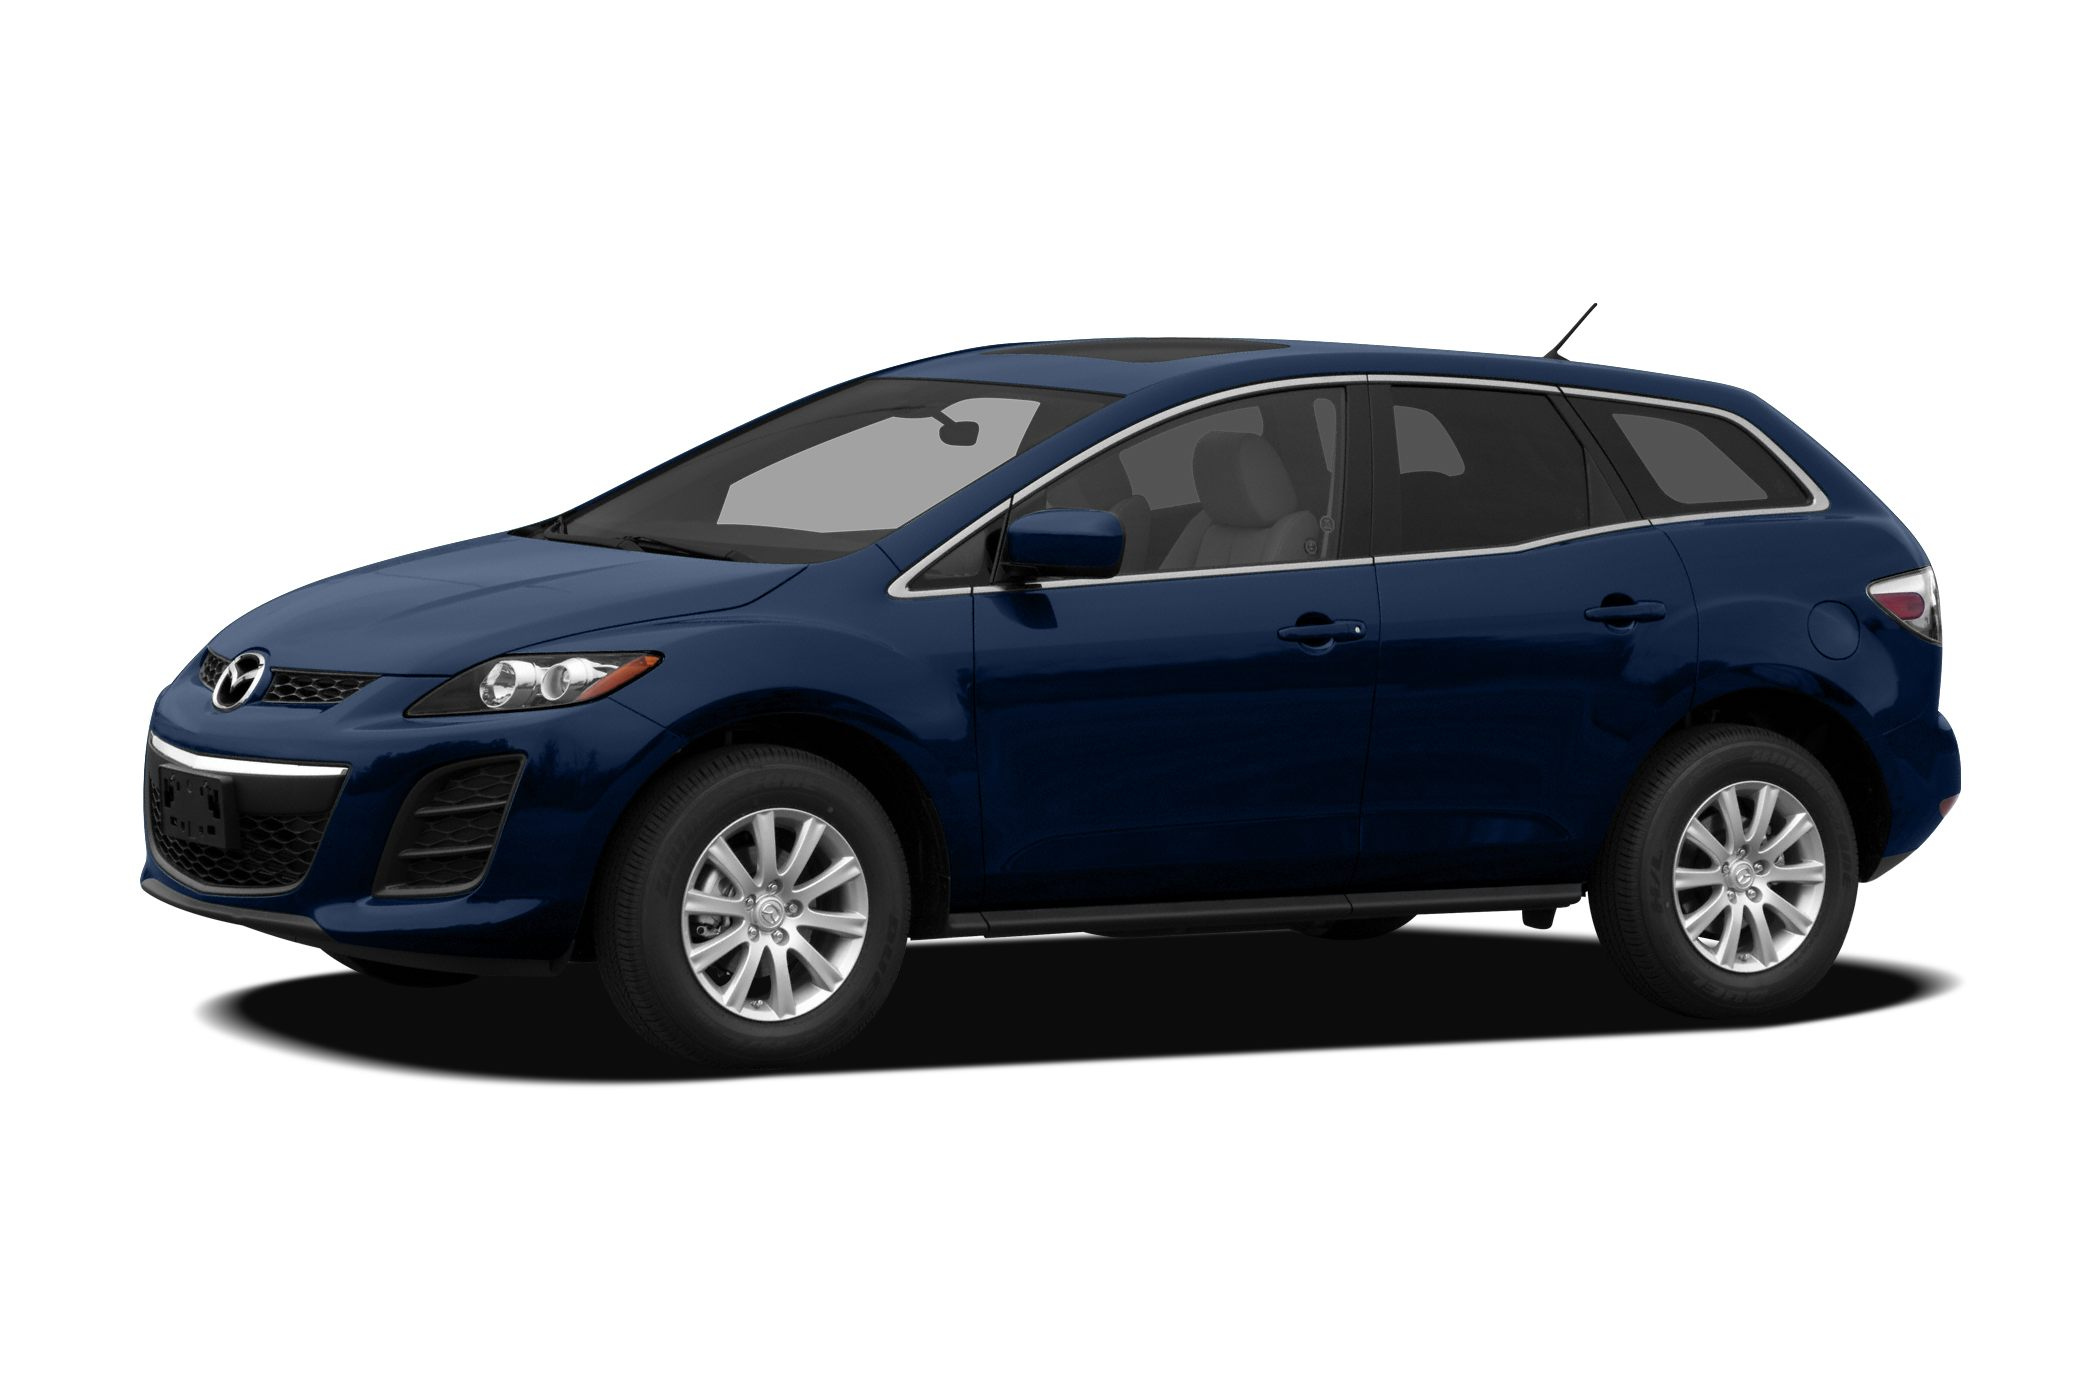 2010 Mazda CX-7 S Touring SUV for sale in Pottsville for $14,995 with 86,179 miles